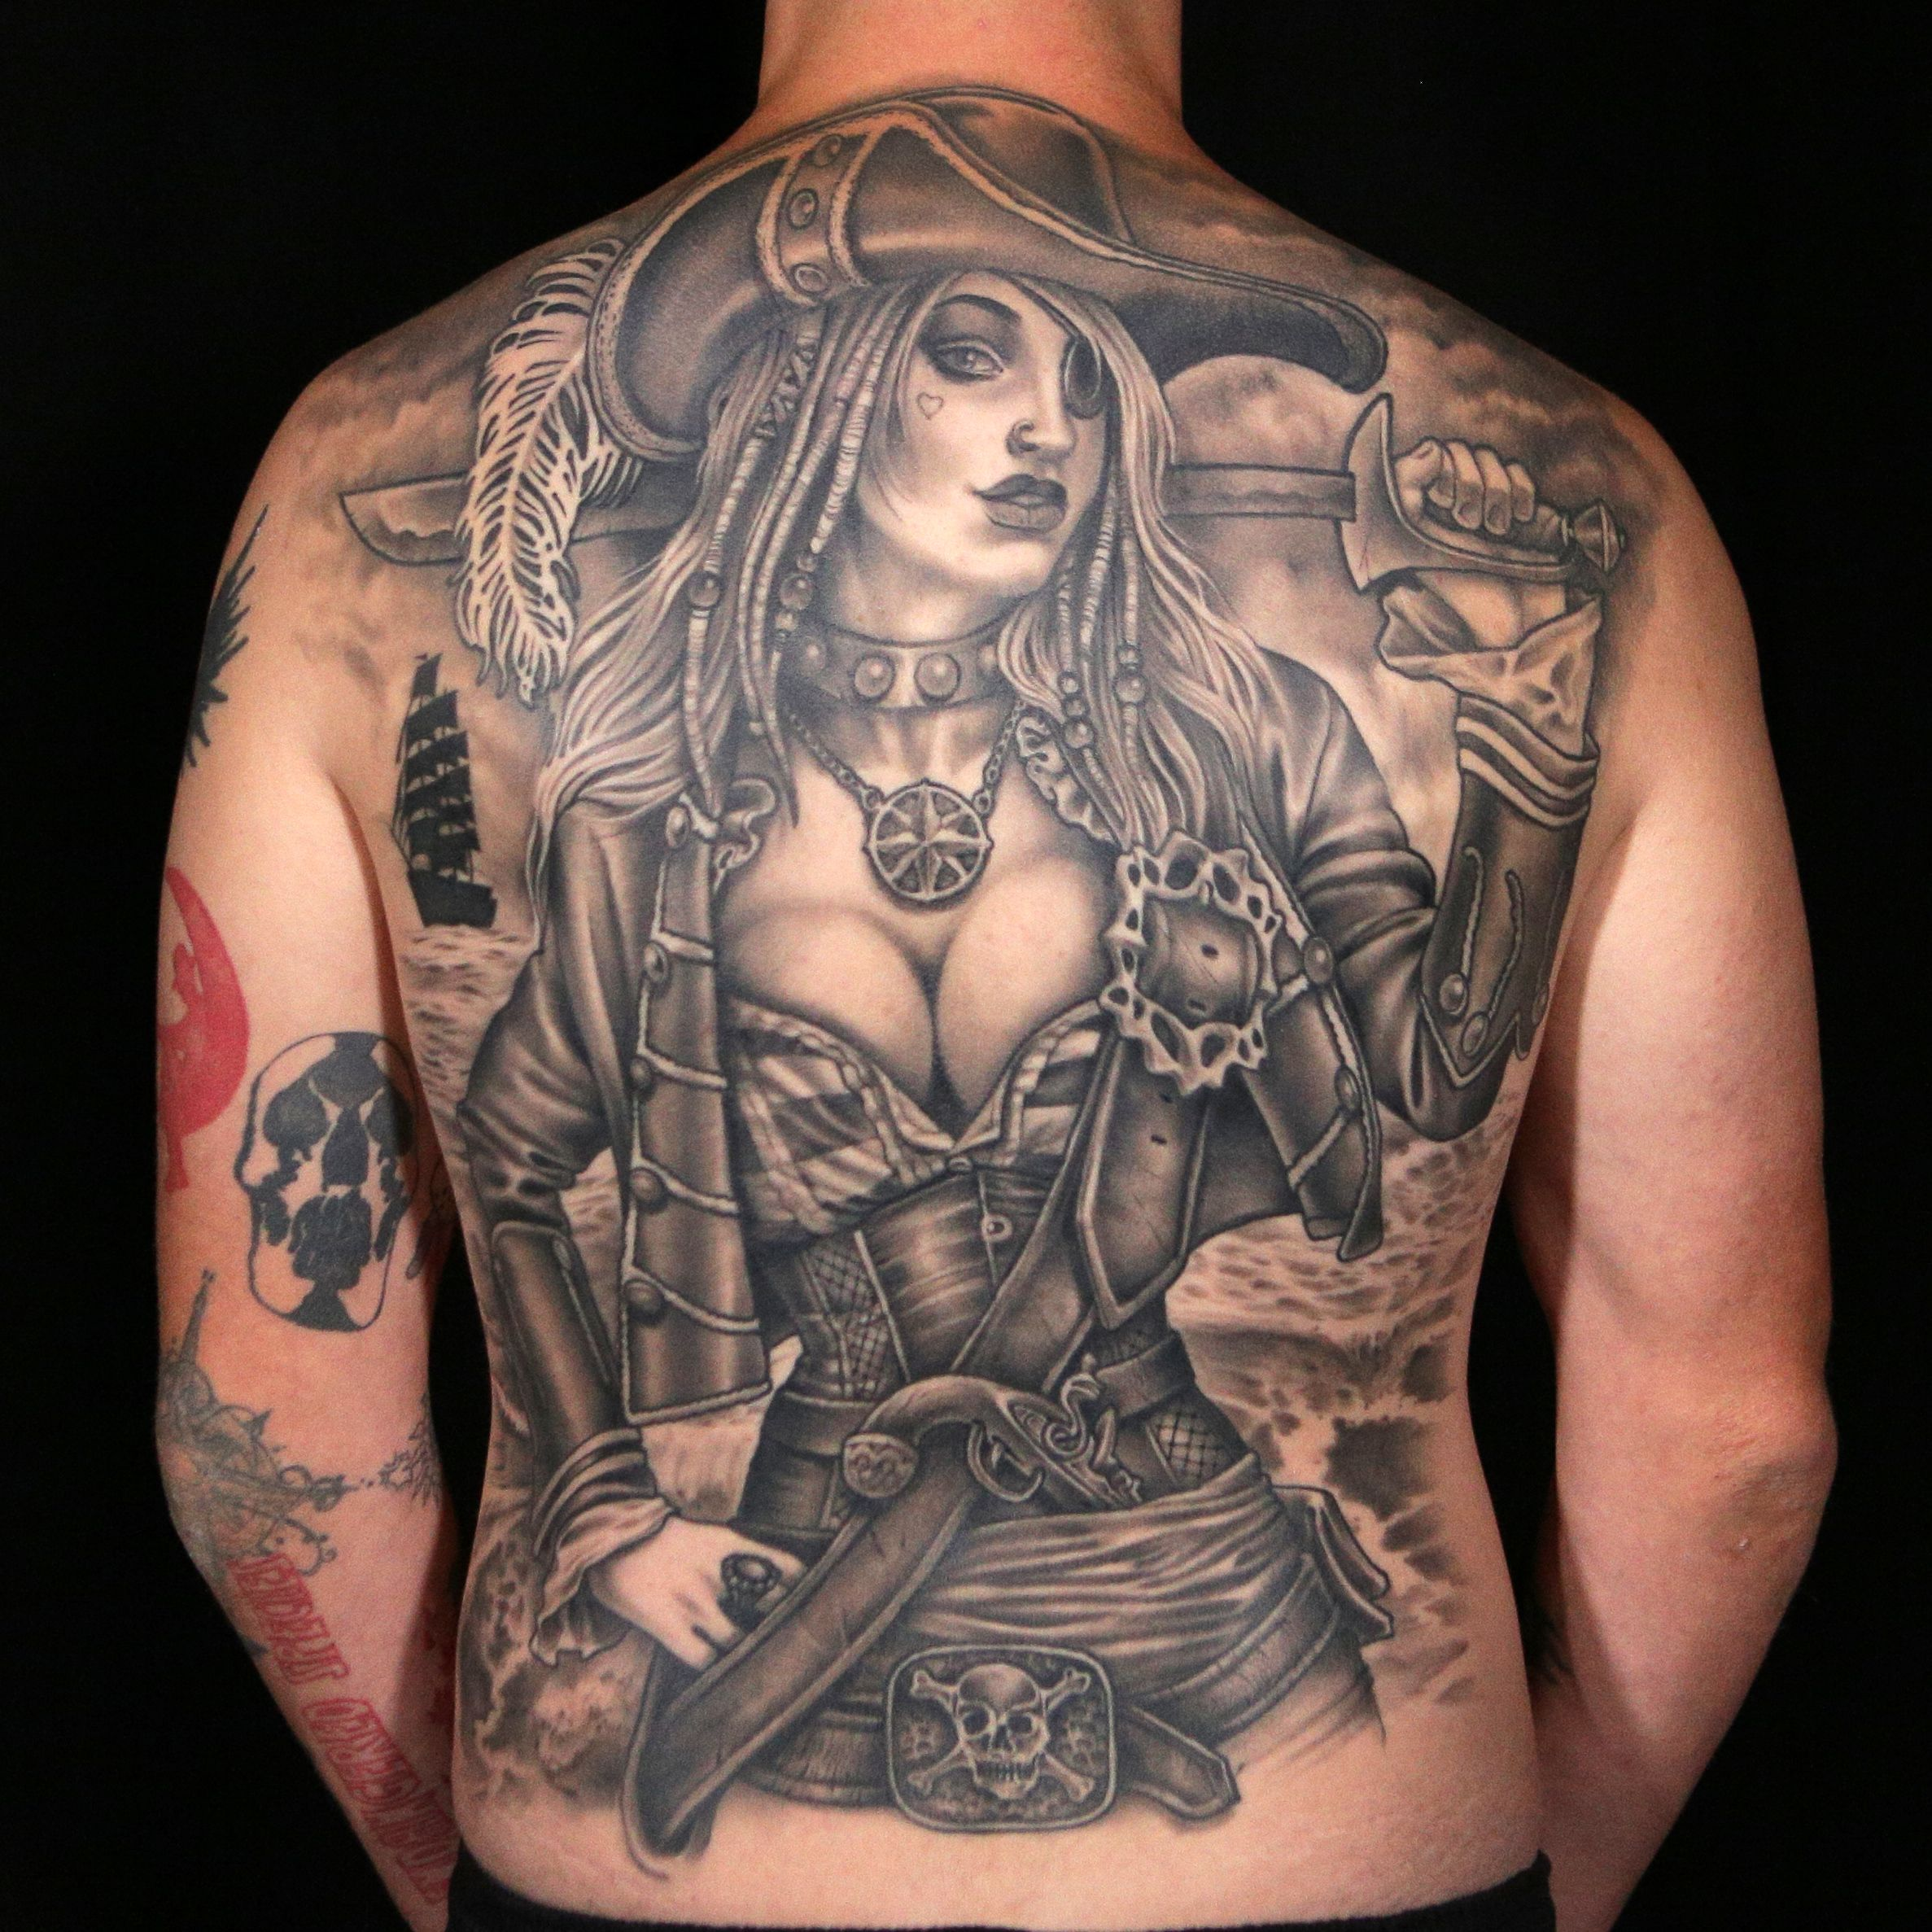 Female Pirate Tattoo by Creepy Jason Ink master, Black